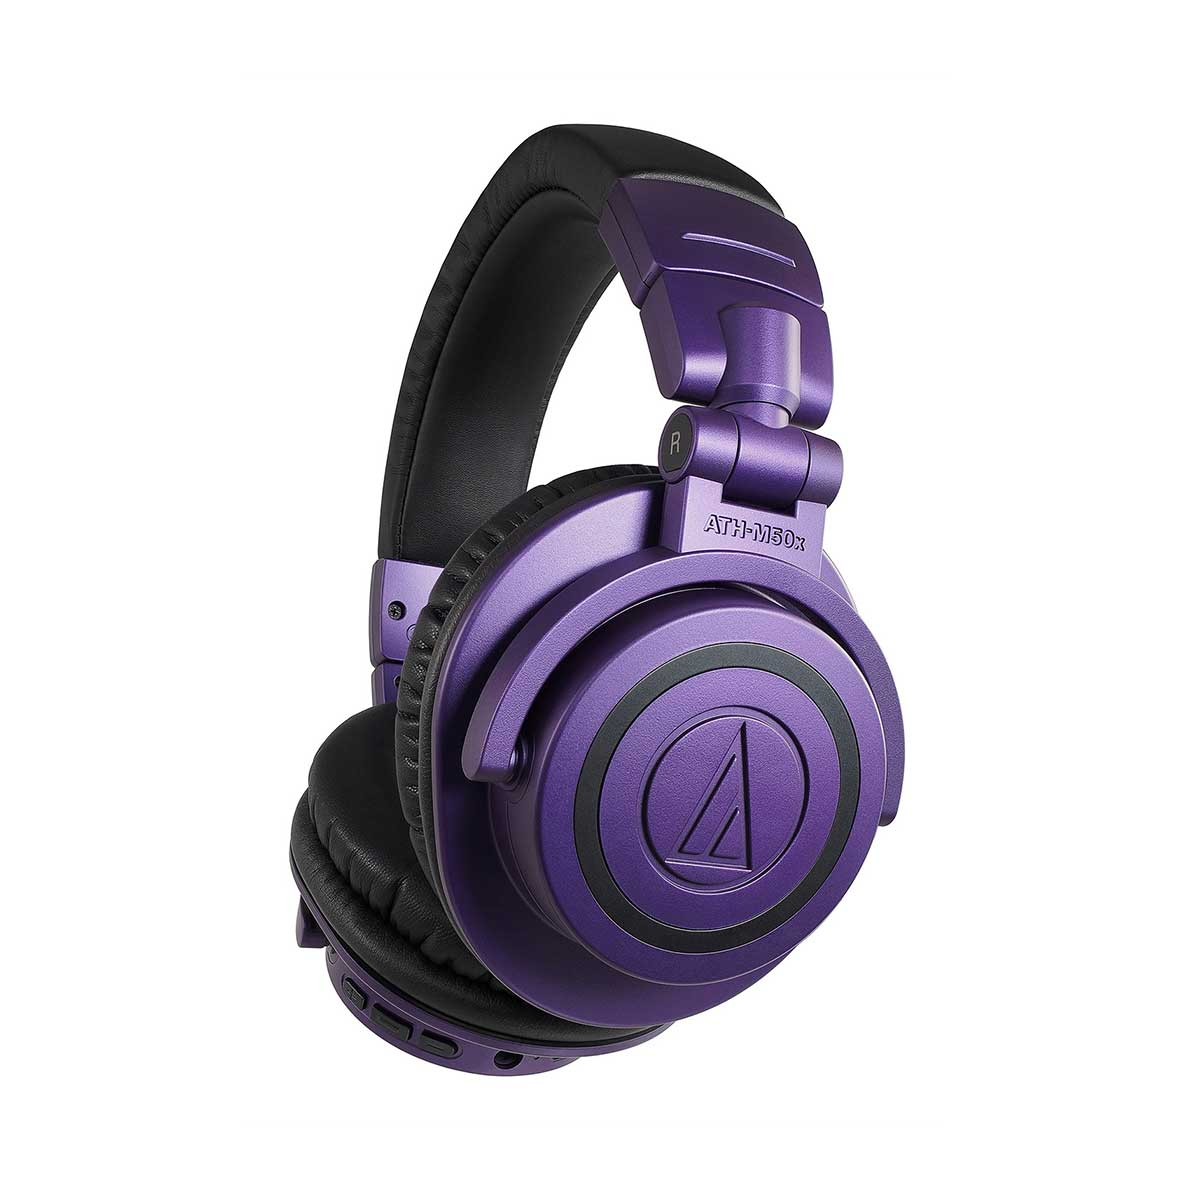 Audio-Technica LIMITED EDITION PURPLE Studio Monitoring Headphones